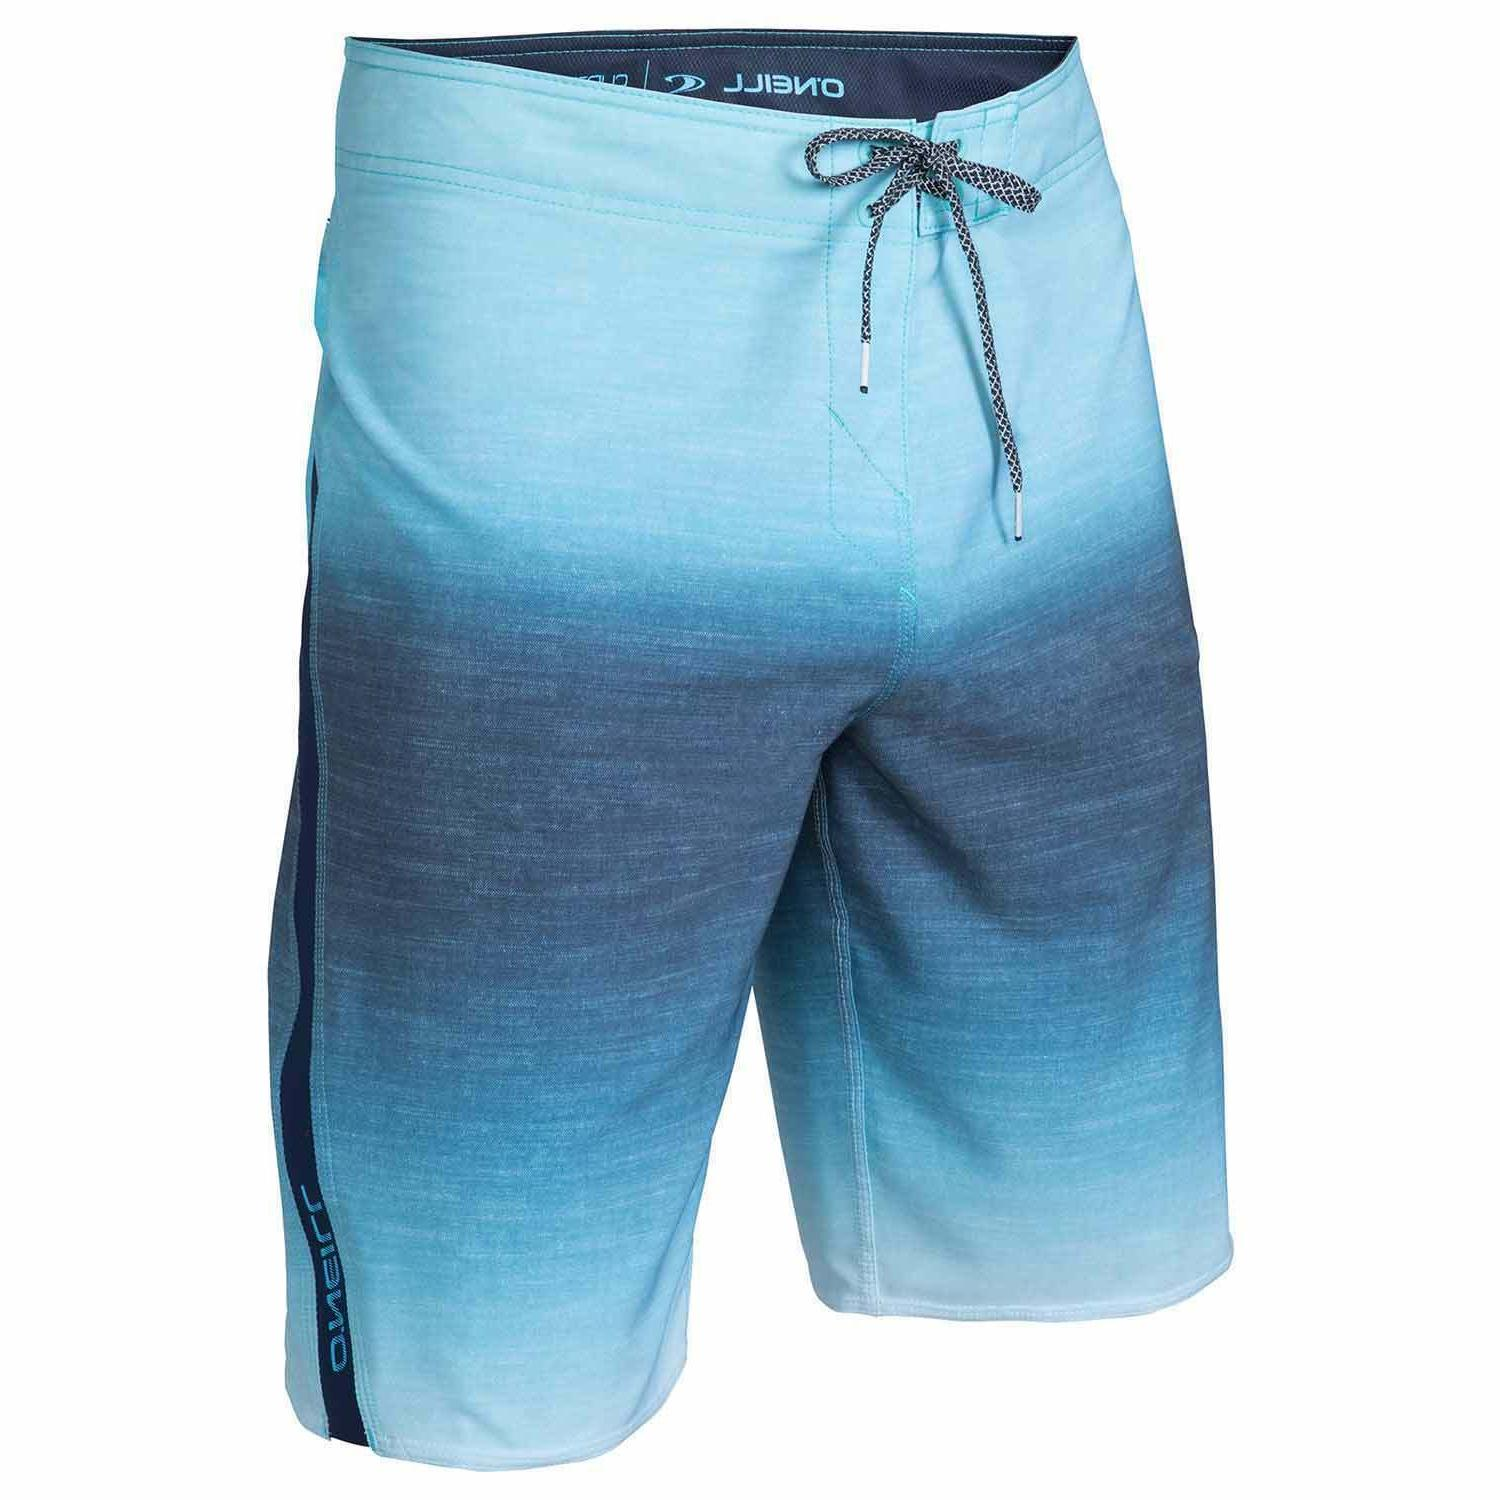 O'NEILL–Men's Superfreak Fader Board Shorts Size 38